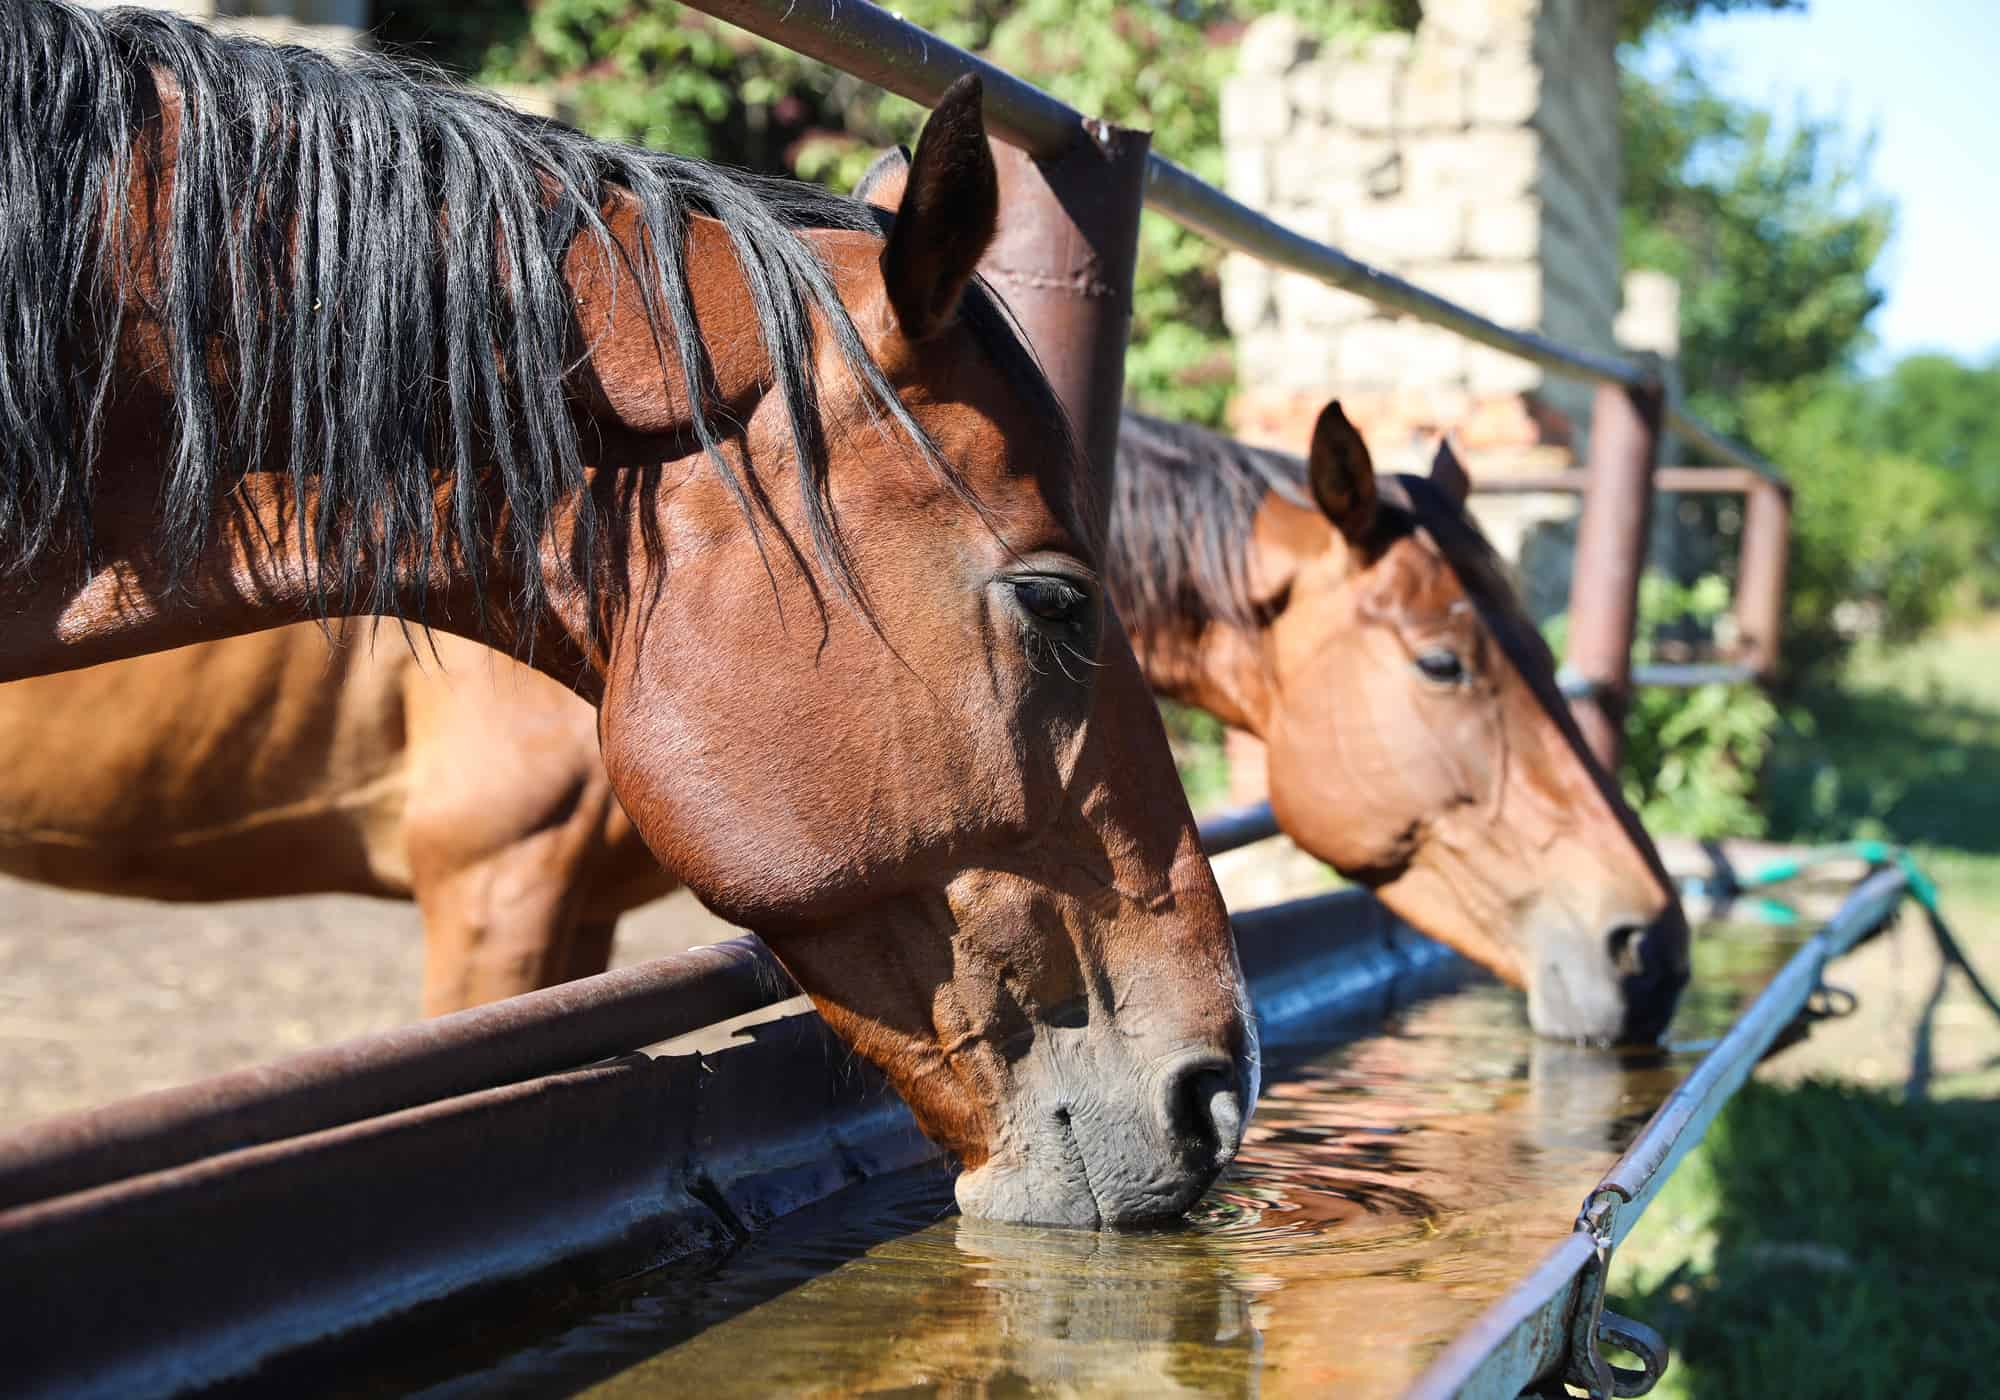 How Much Water Does A Horse Drink (3 Tips to Ensure)